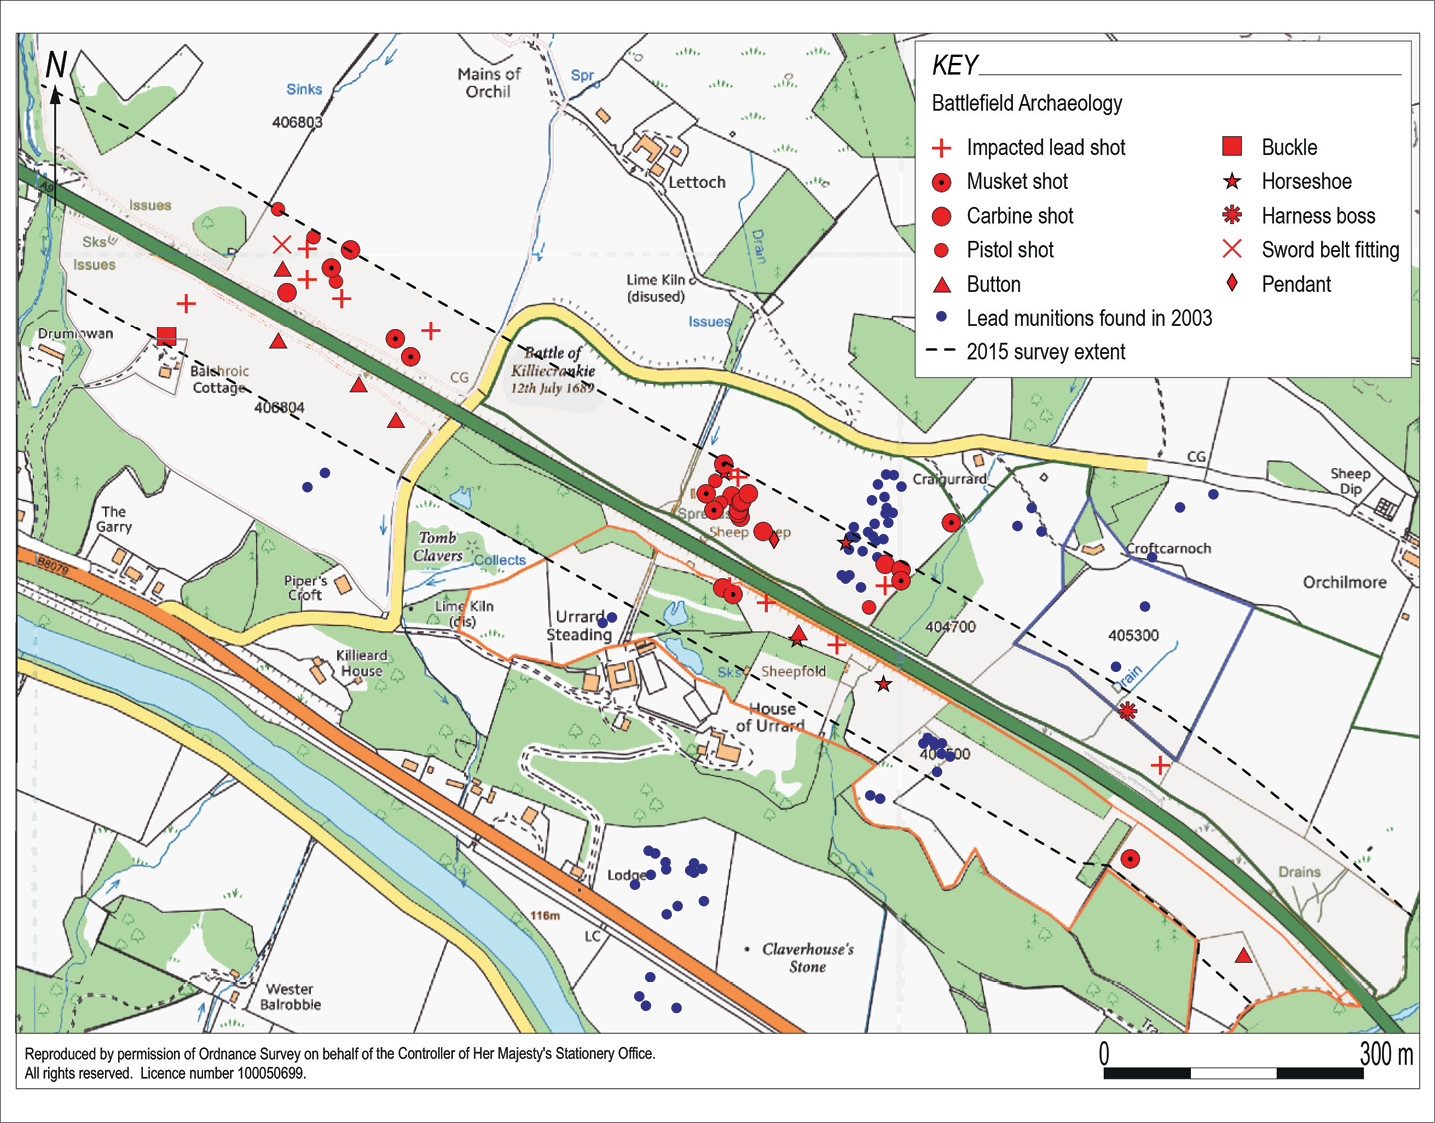 BELOW The distribution of finds recovered from Killiecrankie. Note the concentration in the vicinity of Urrard House.